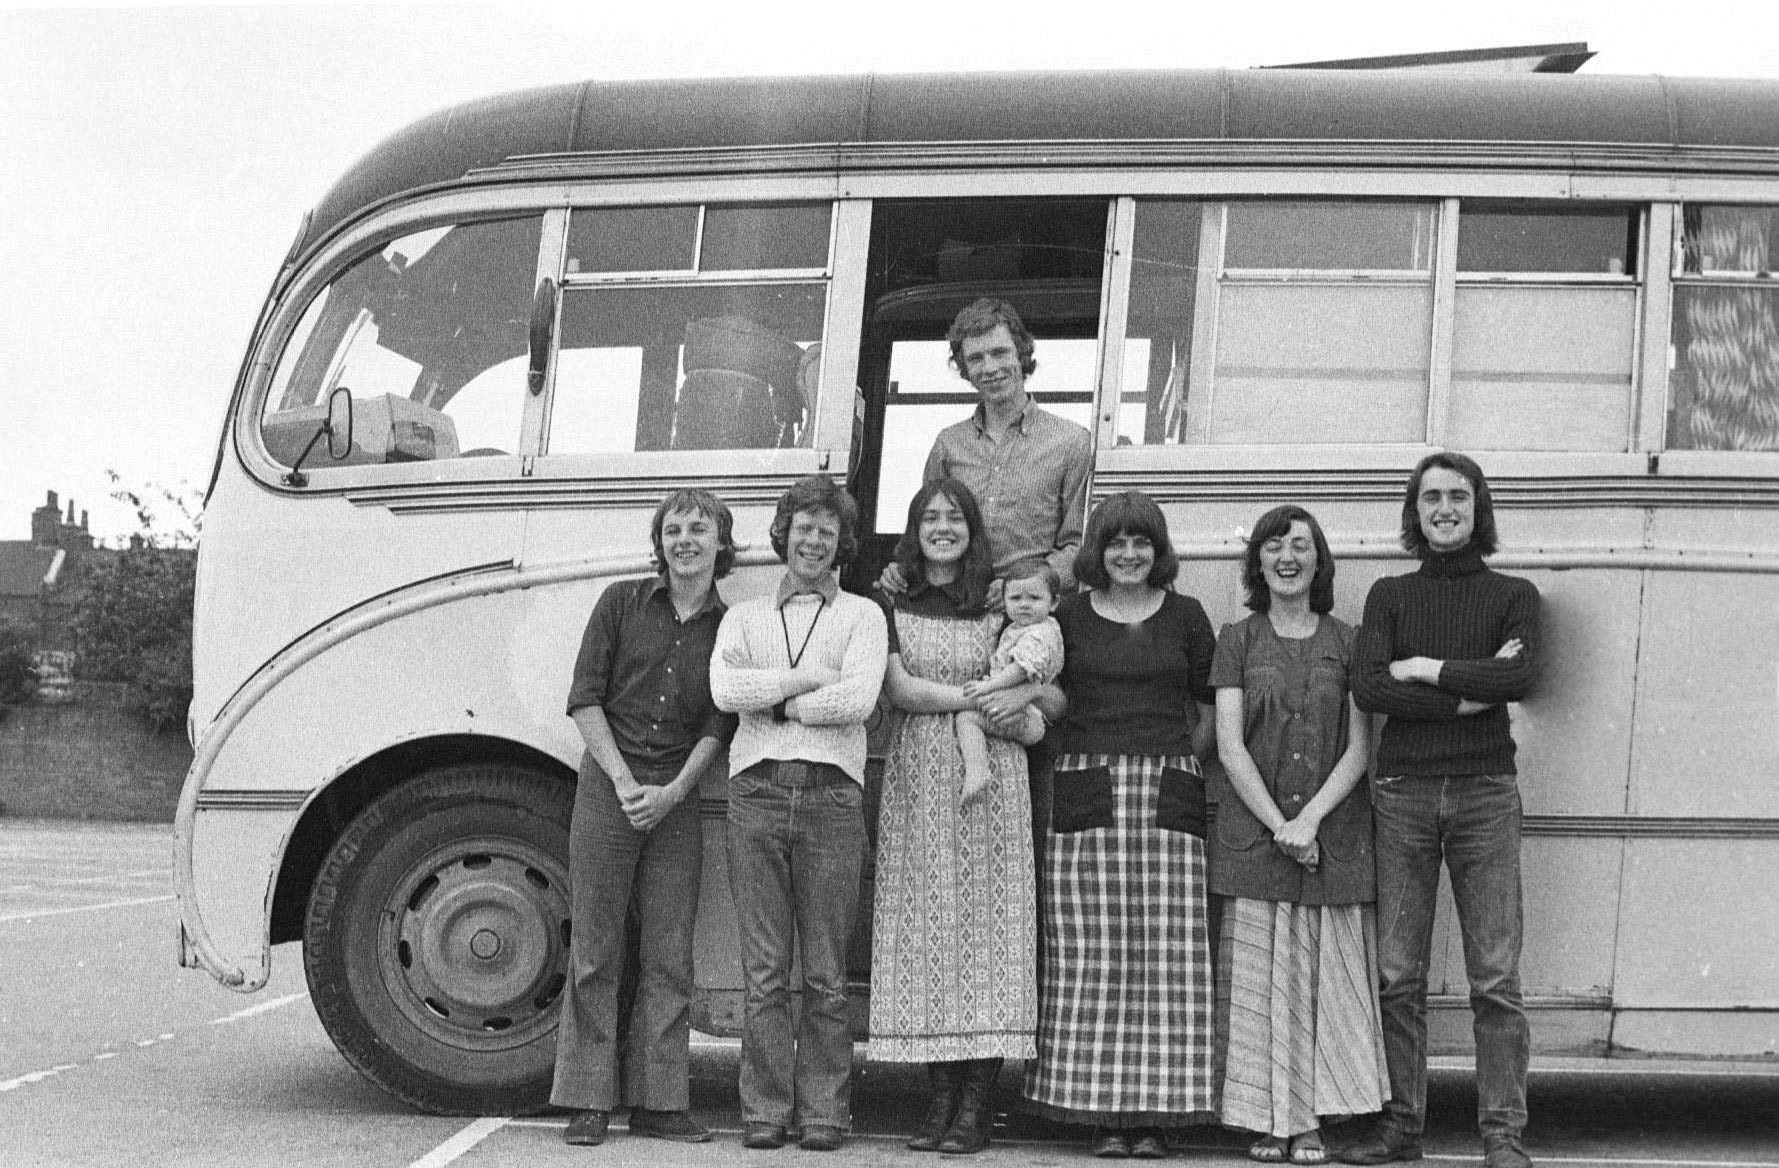 Living in the bus! 1970's.